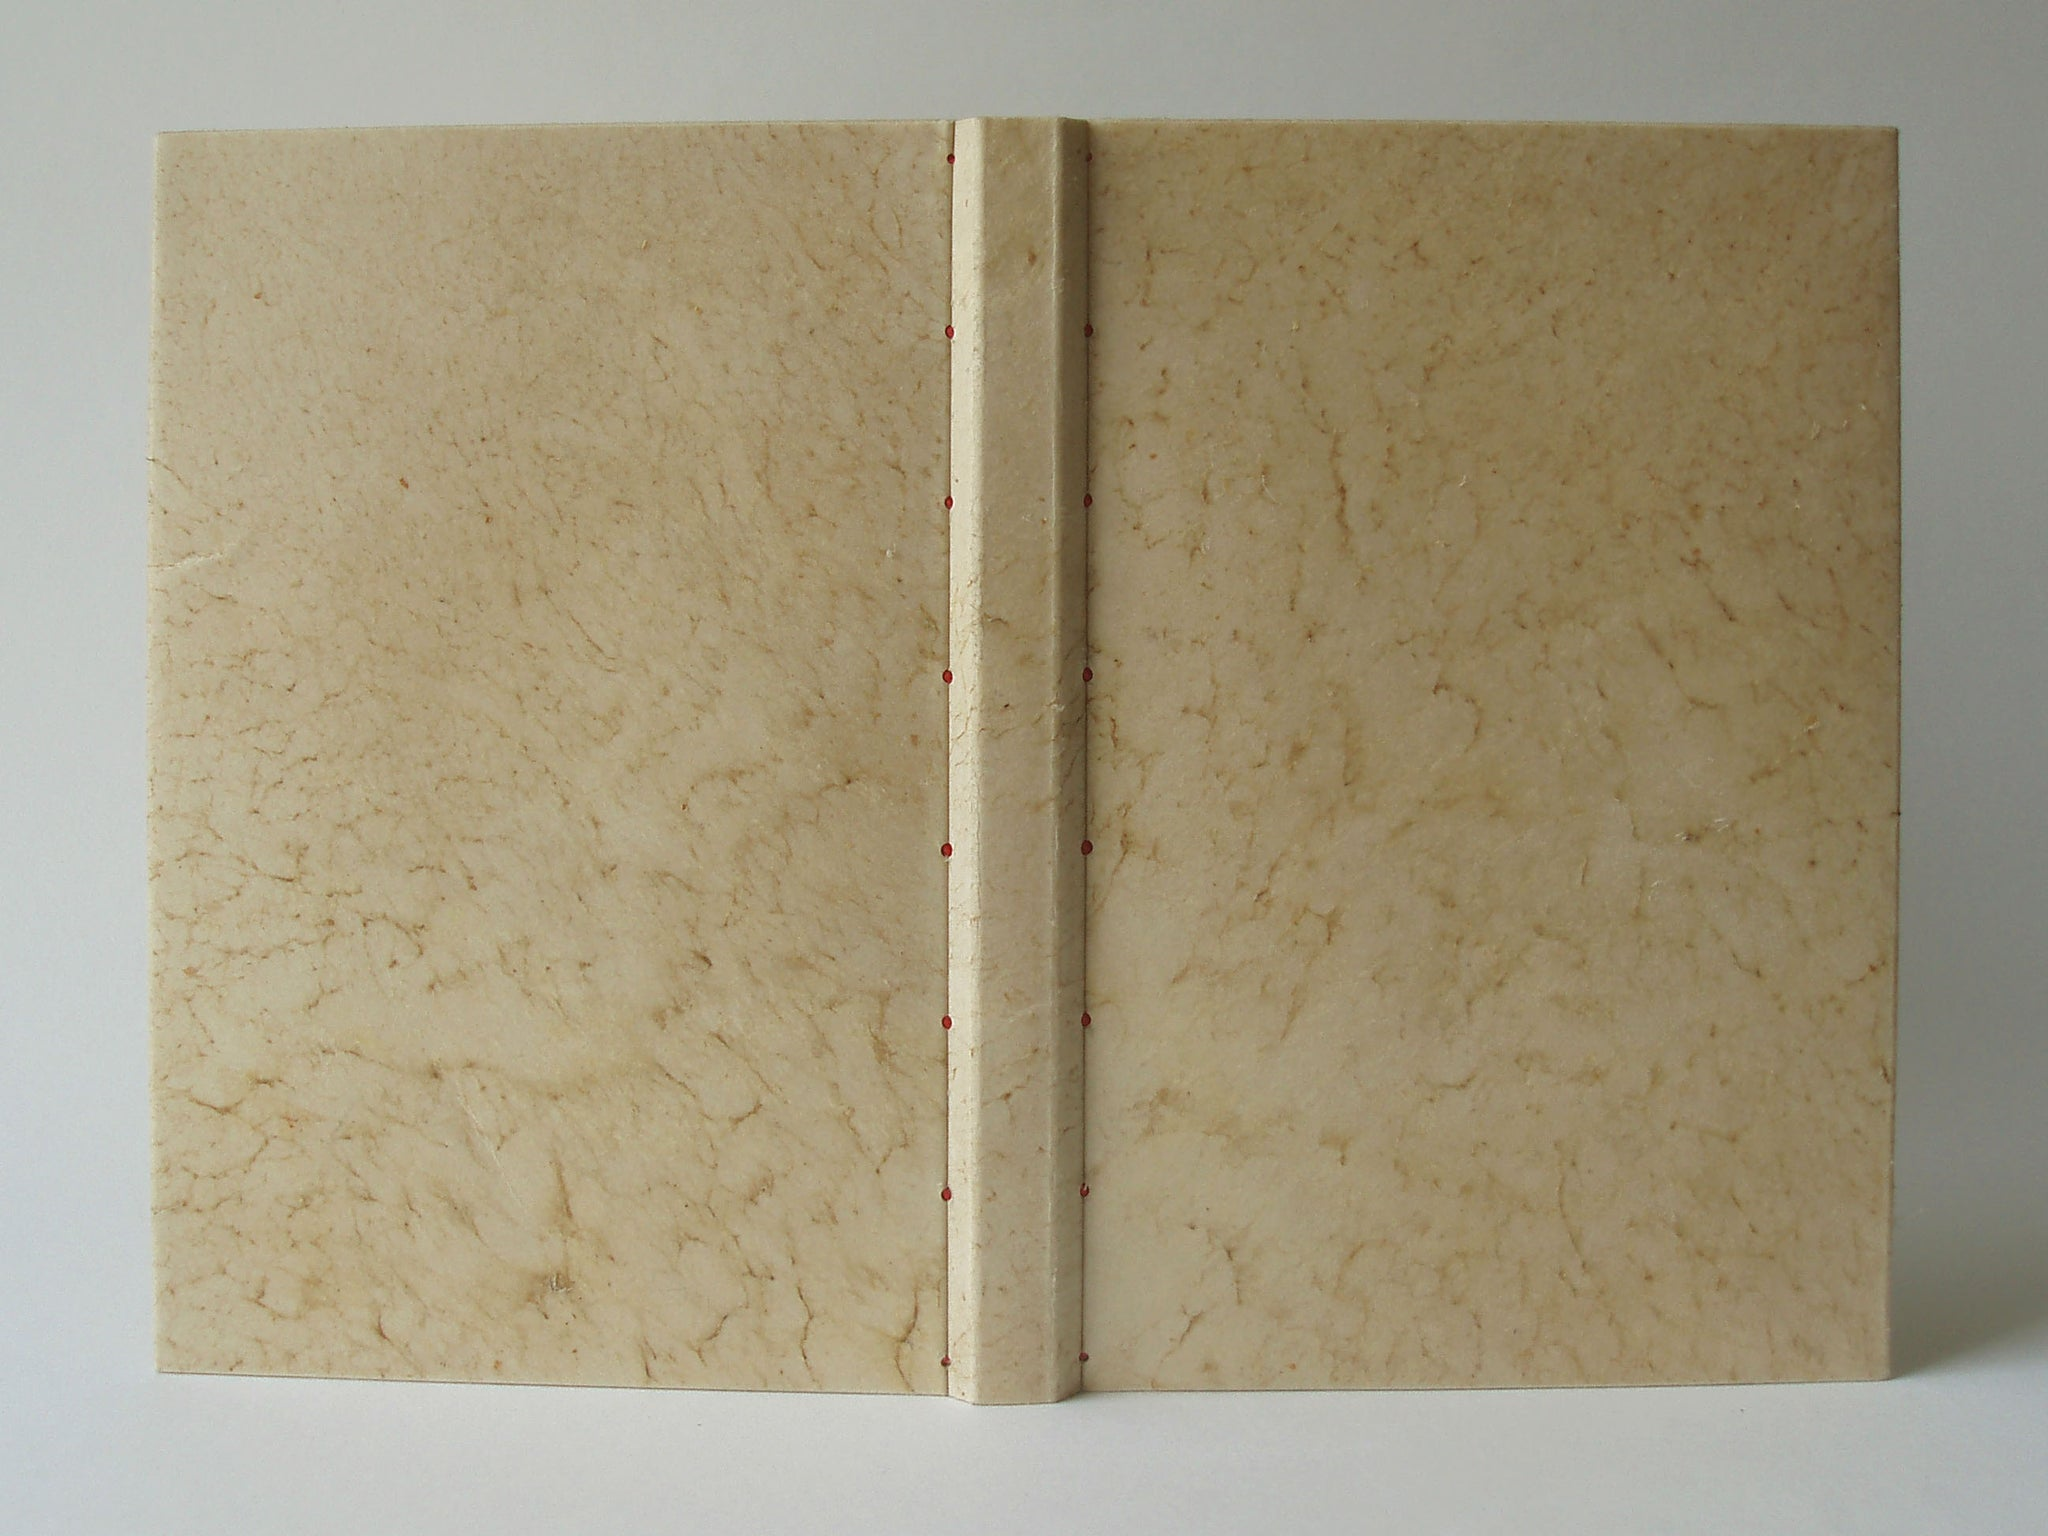 Vellum binding with sewn hinges